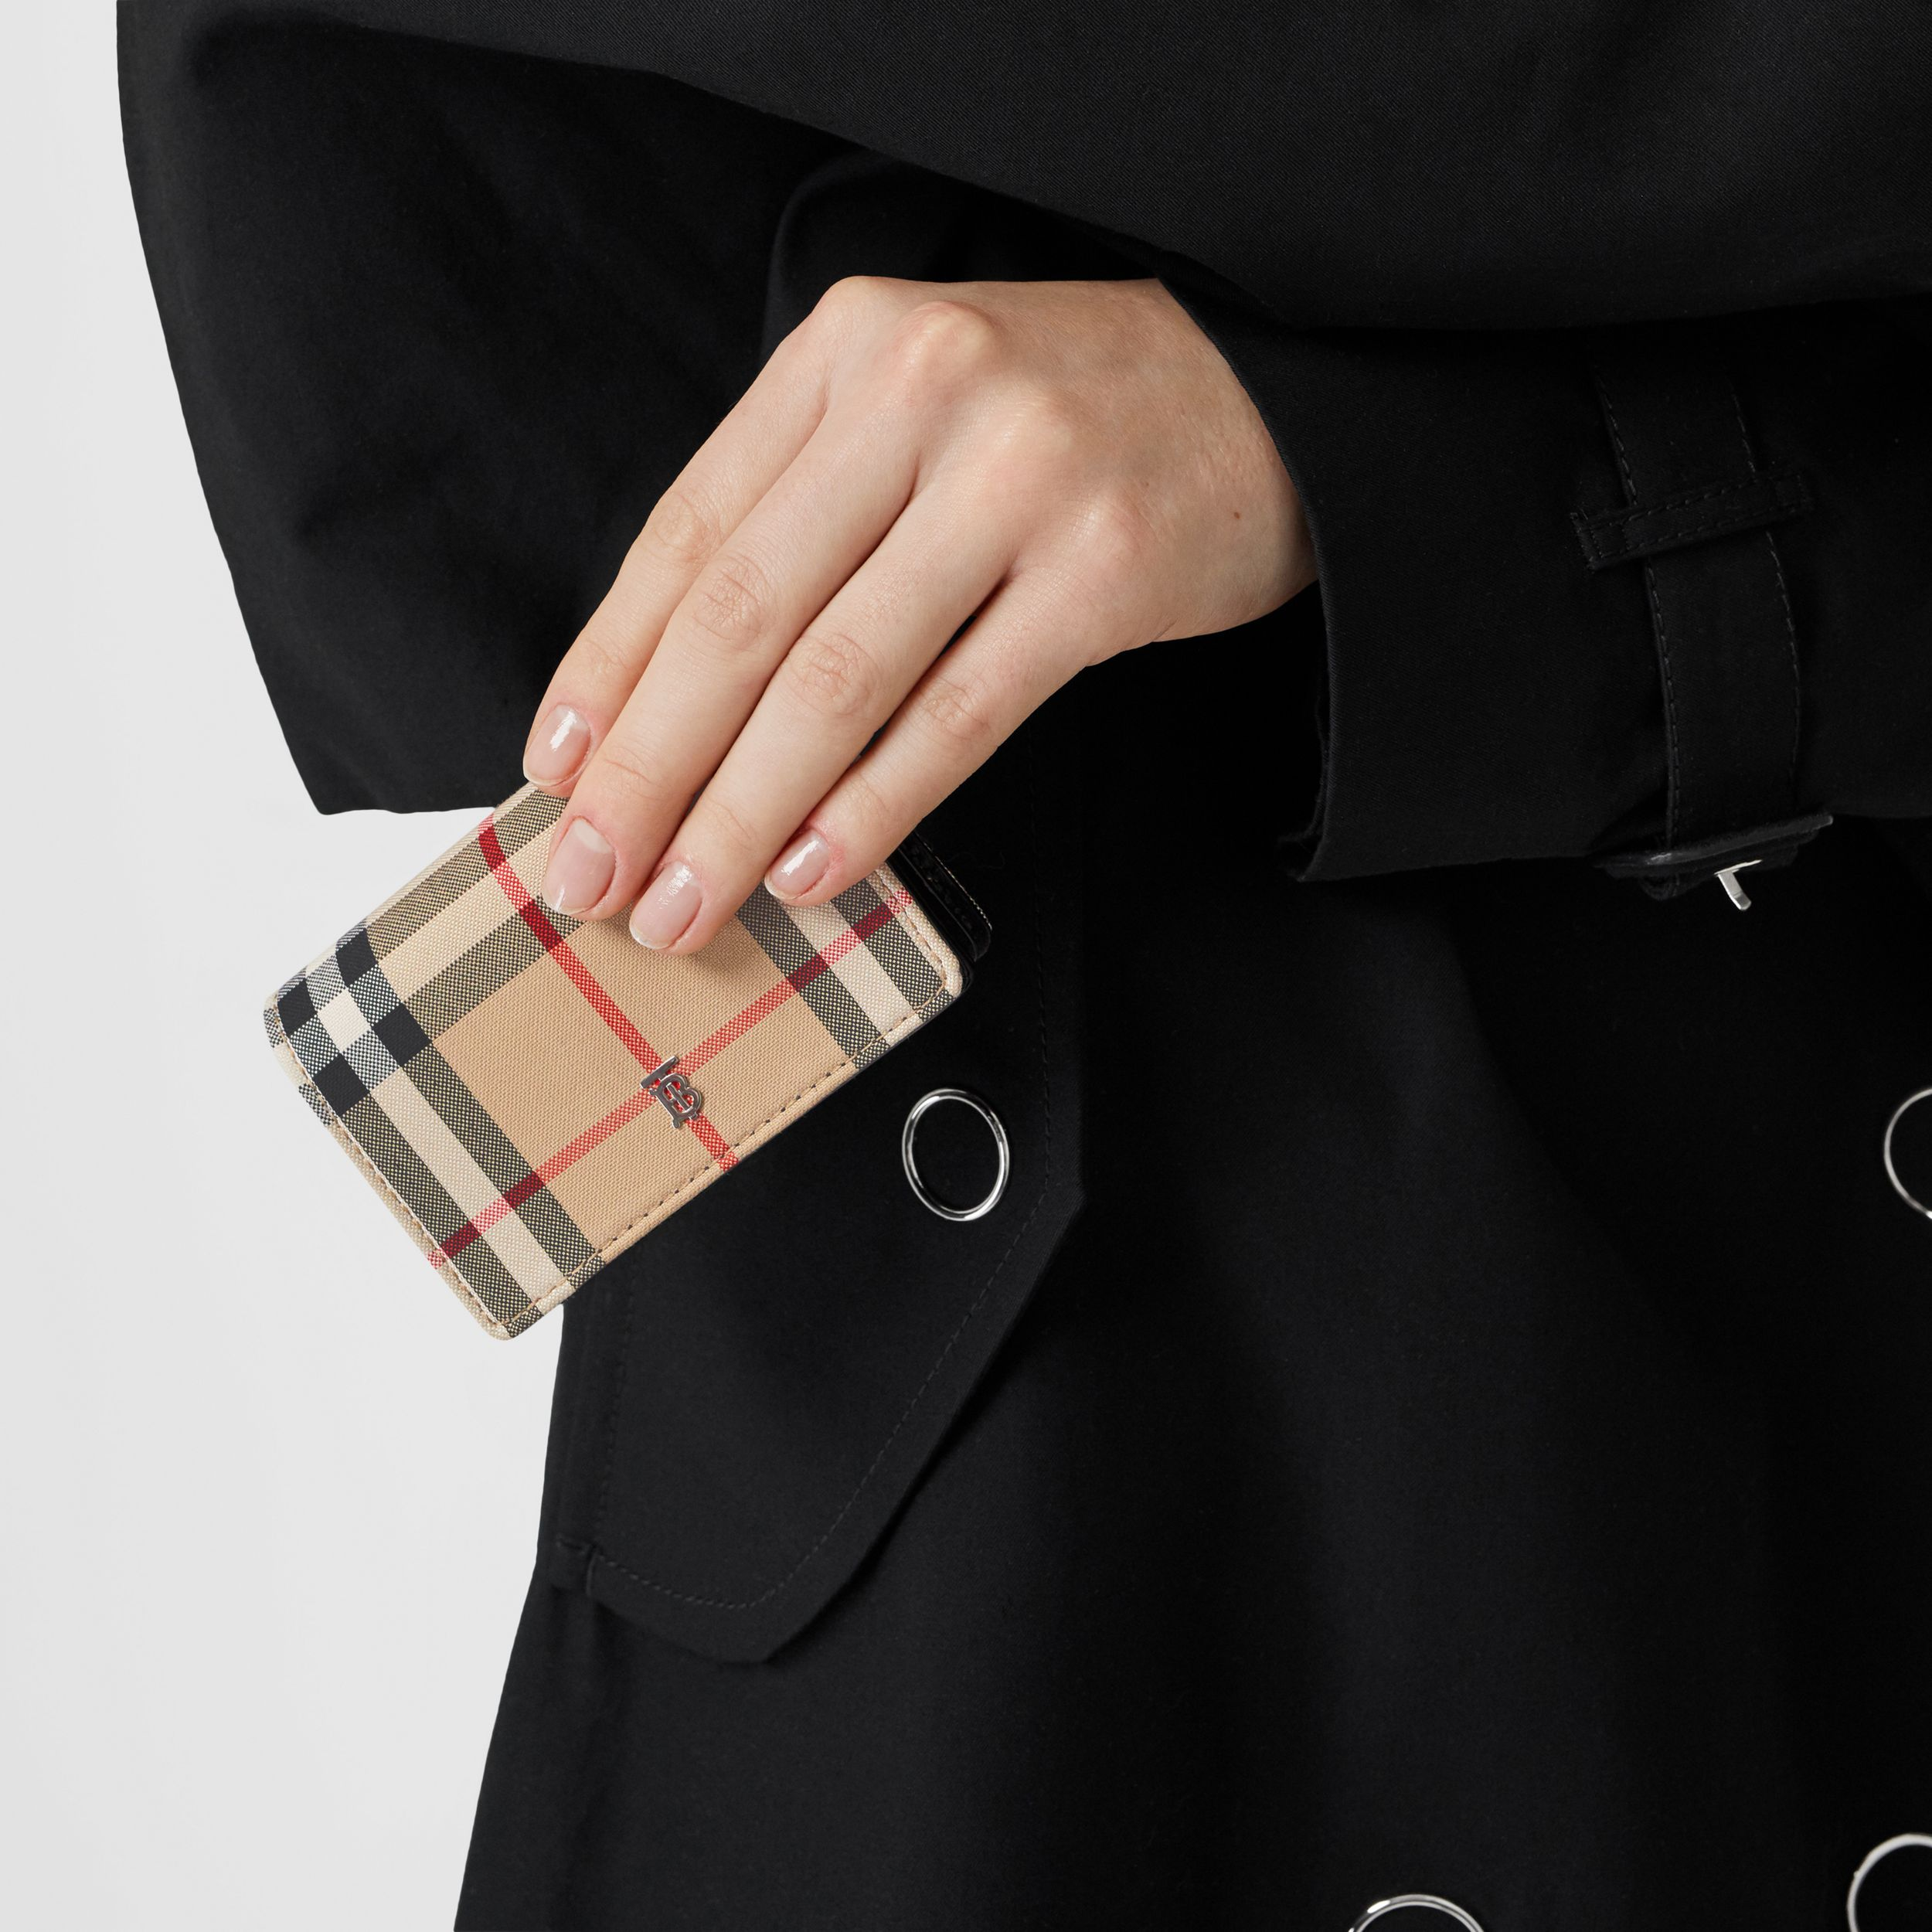 Vintage Check Card Case with Detachable Strap in Black - Women | Burberry Hong Kong S.A.R. - 3